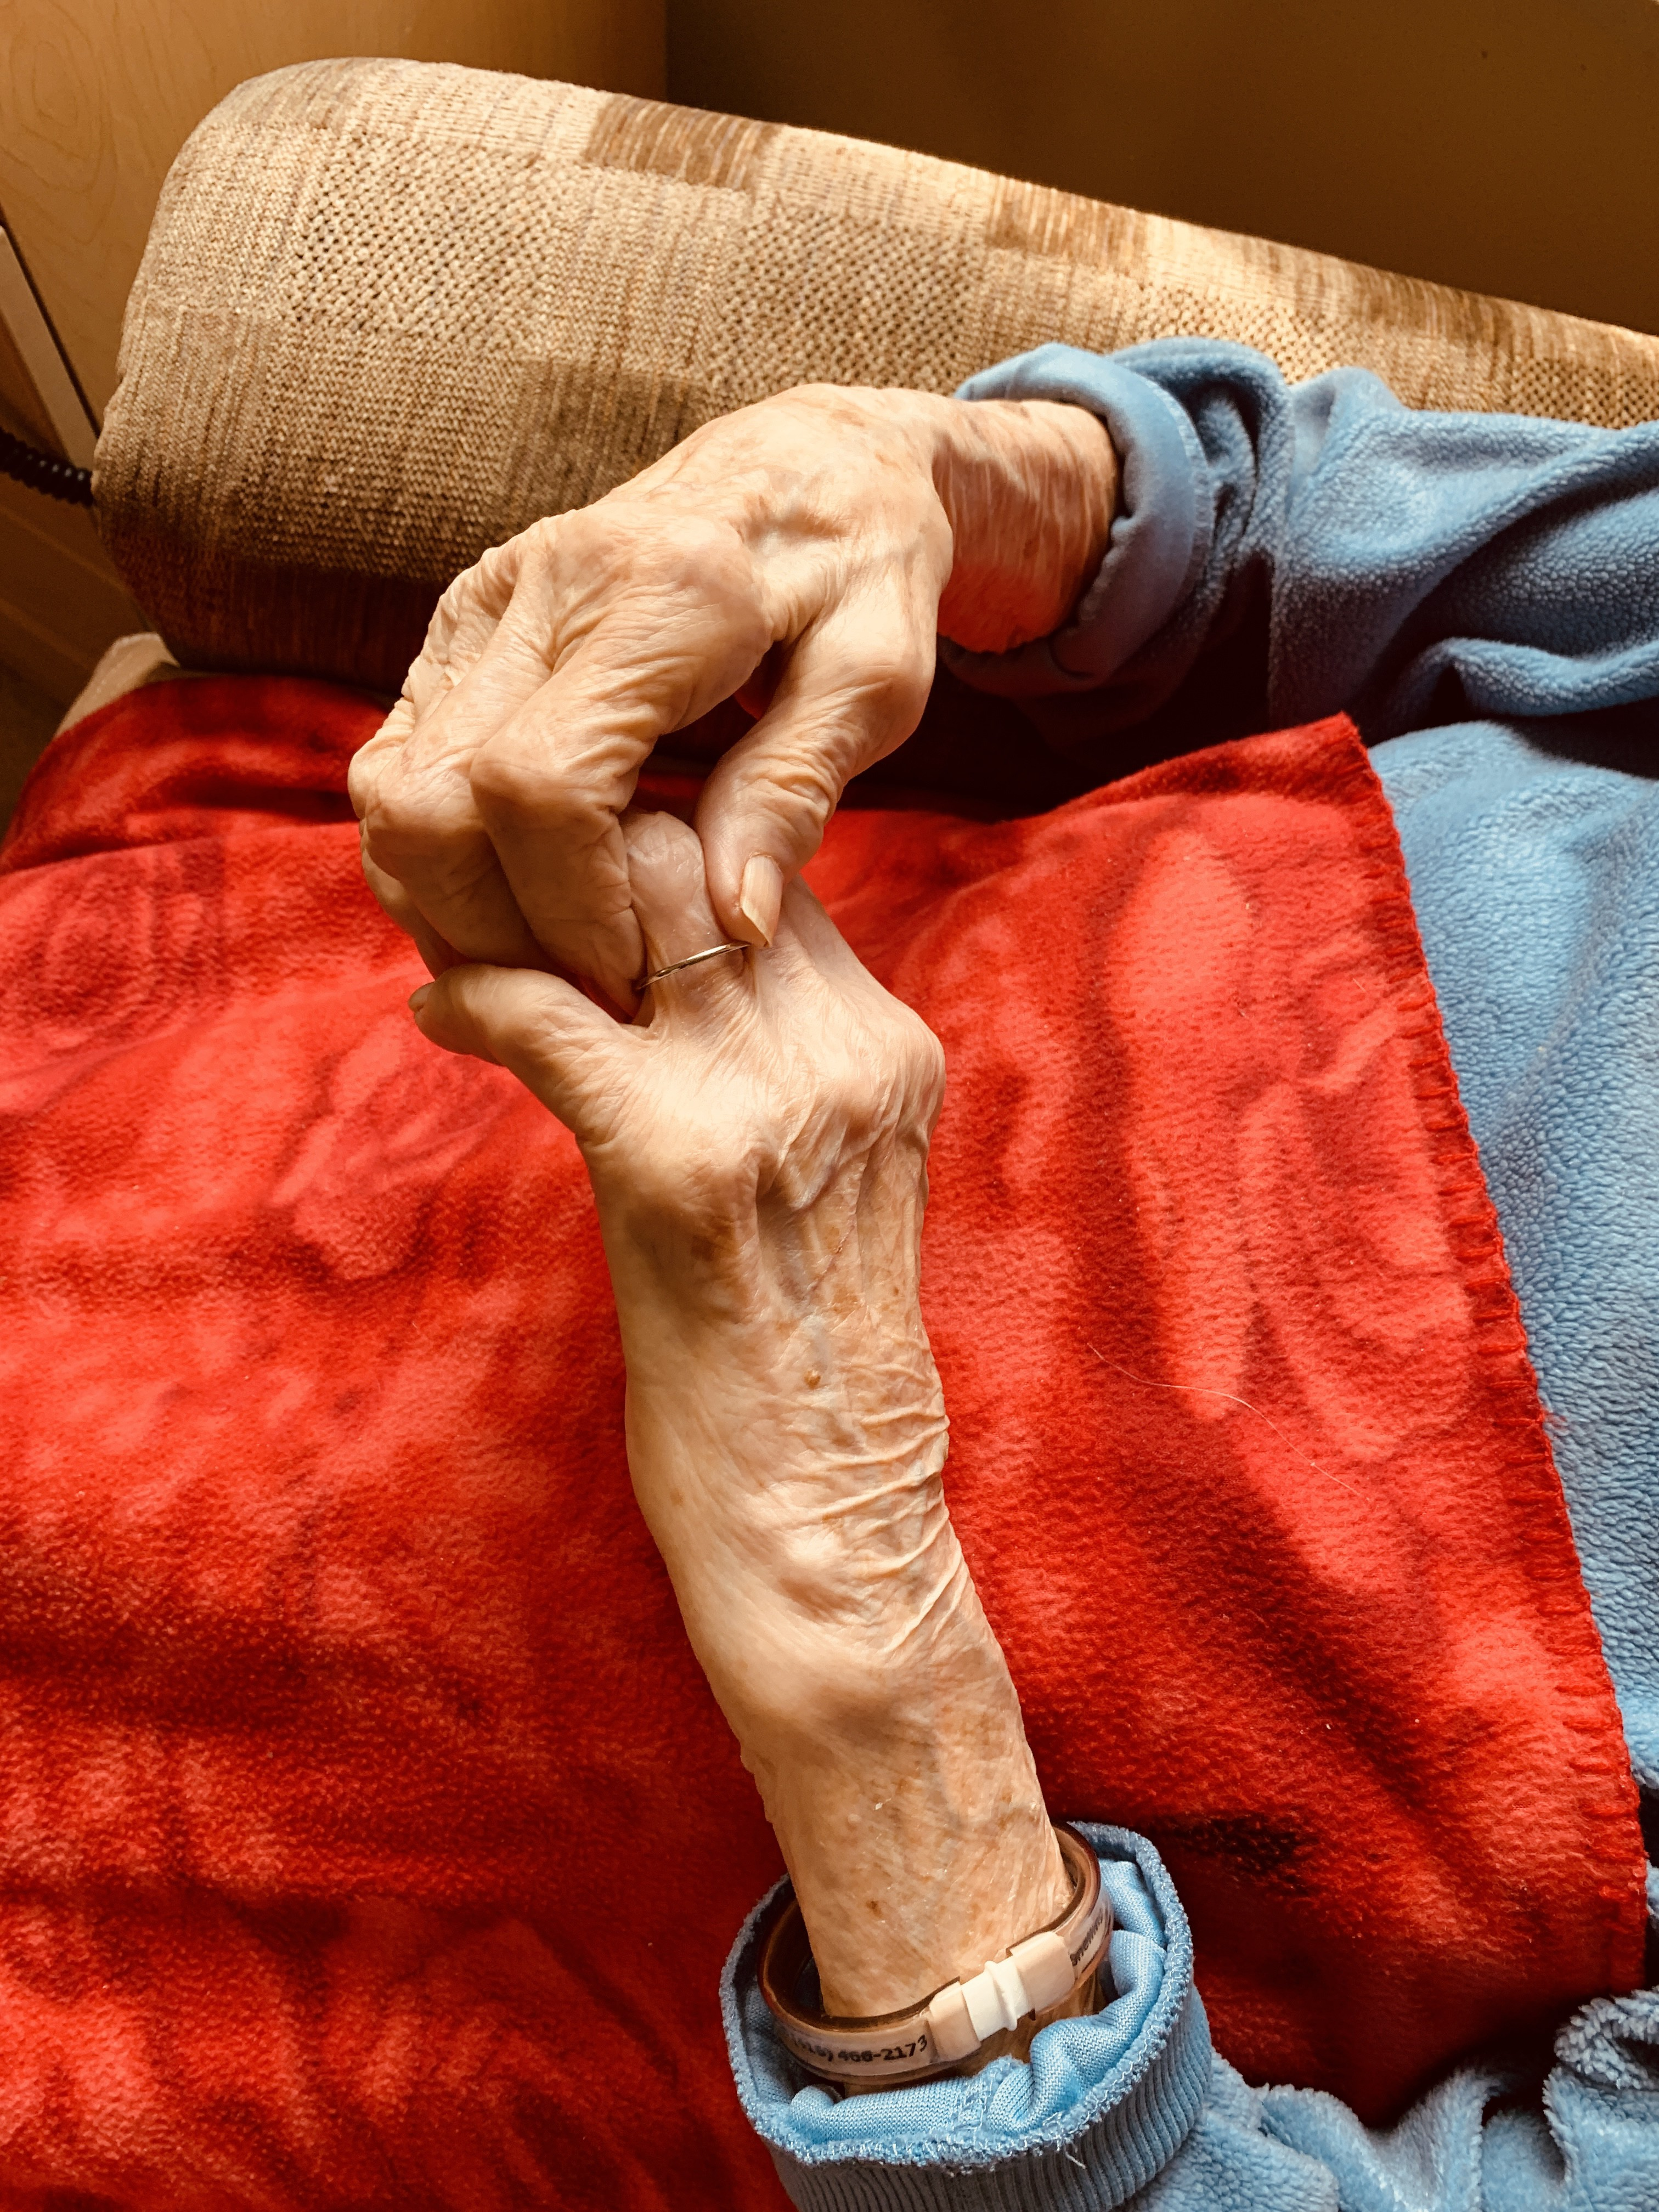 Photo taken by author, Samantha Hodder. Depicts the hands of Madge, at 111 years